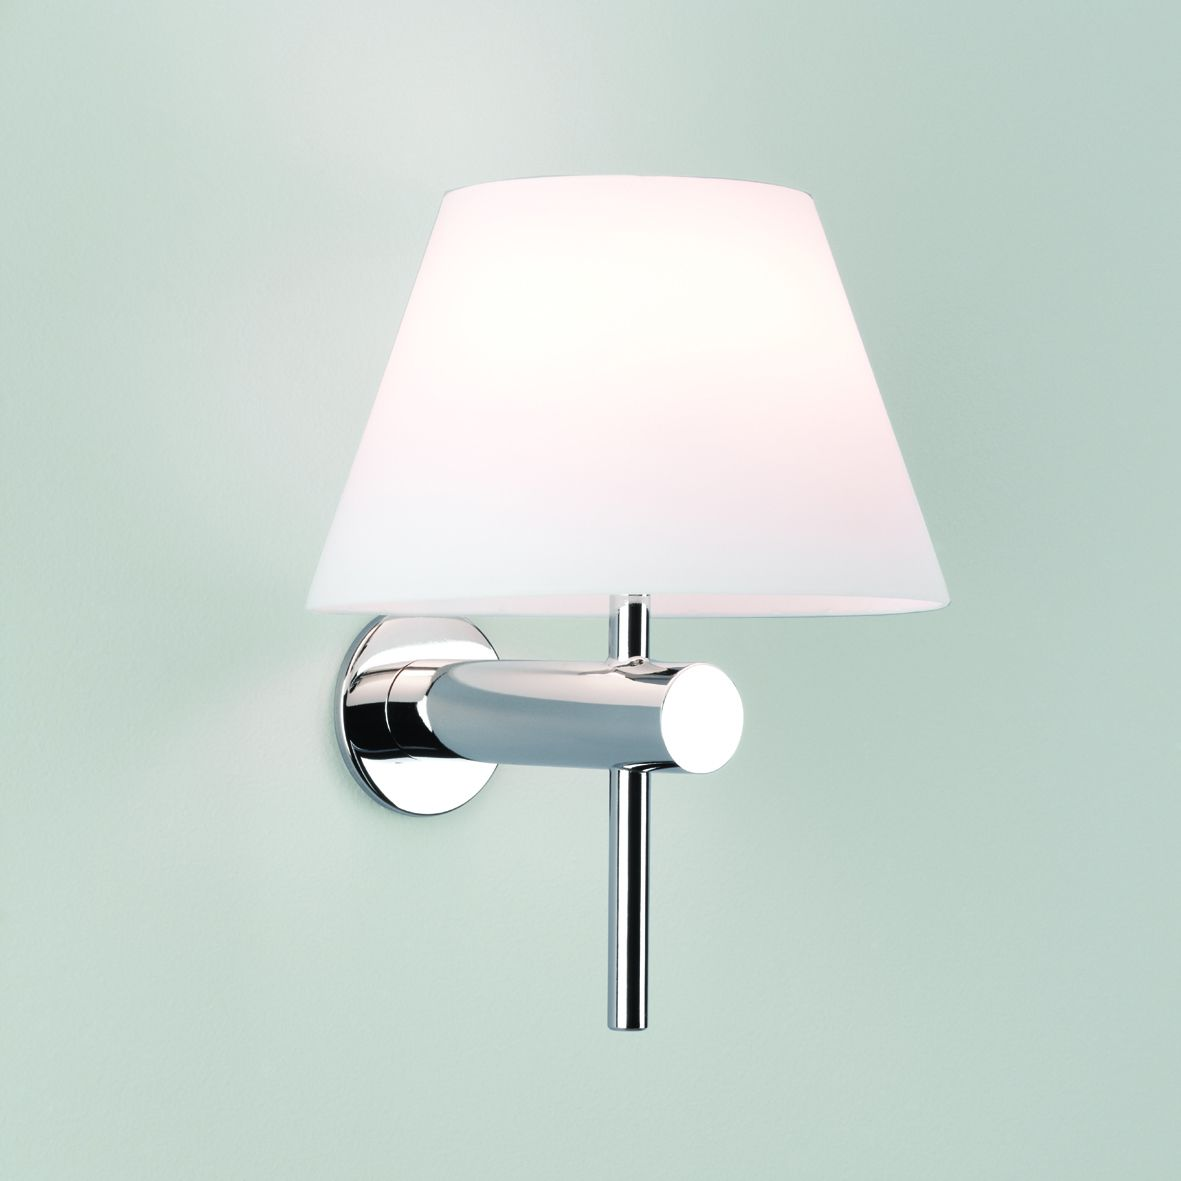 Wall Mounted Movable Lamp : Wall lamps - lighting fixtures that are mounted on walls Warisan Lighting